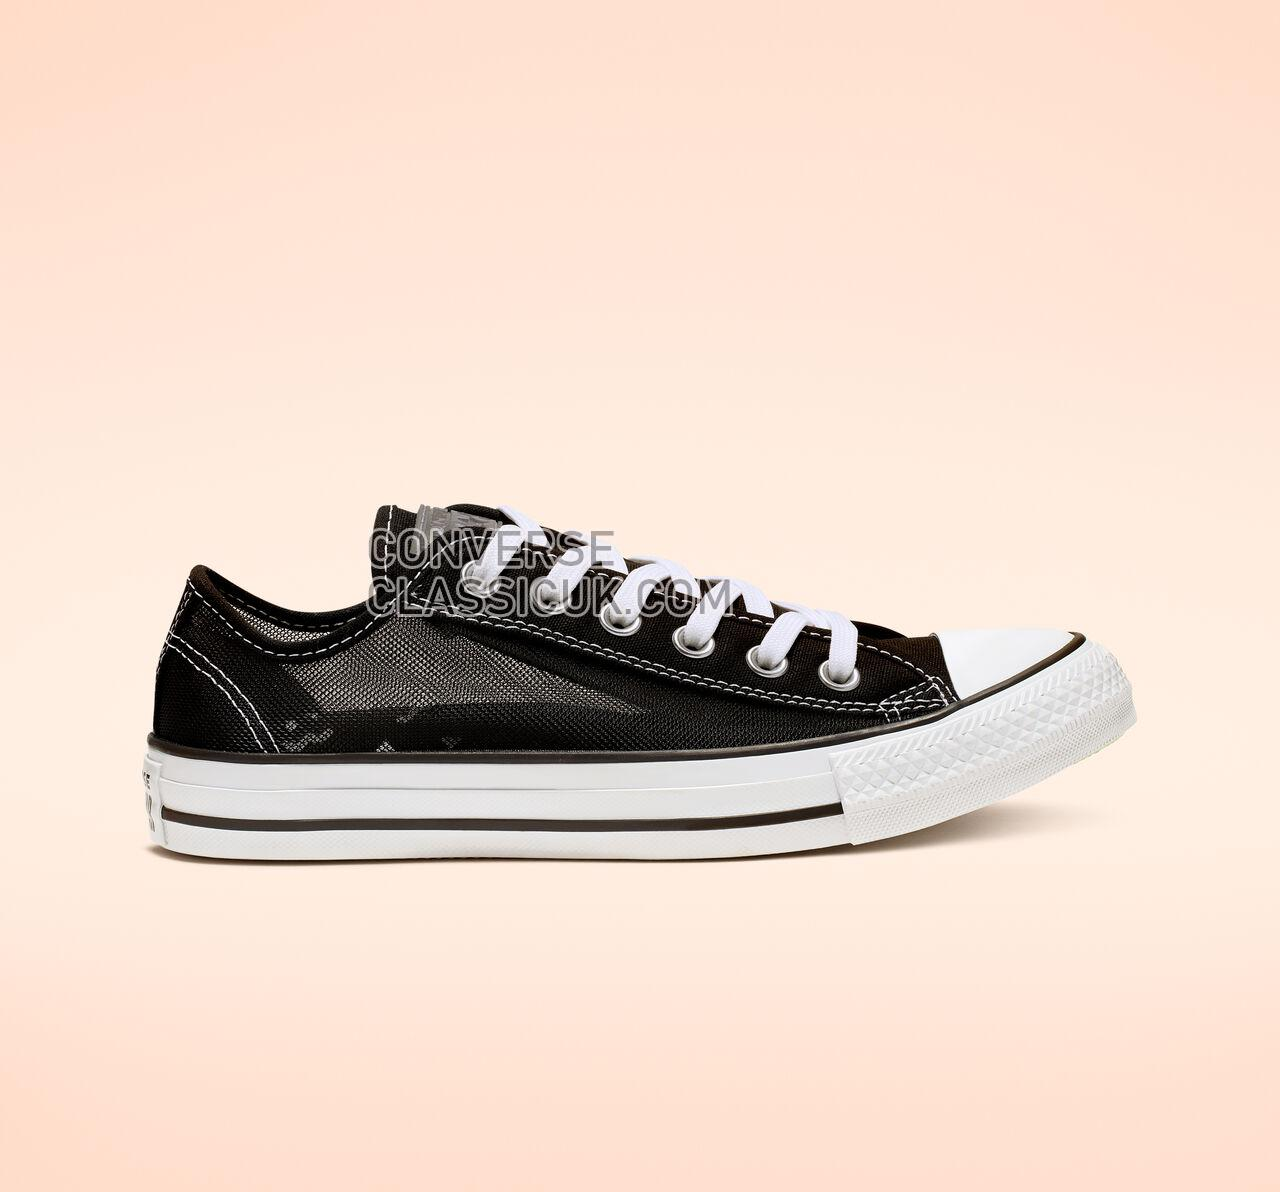 Converse Chuck Taylor All Star See Thru Low Top Womens 564627C Black/White/Black Shoes